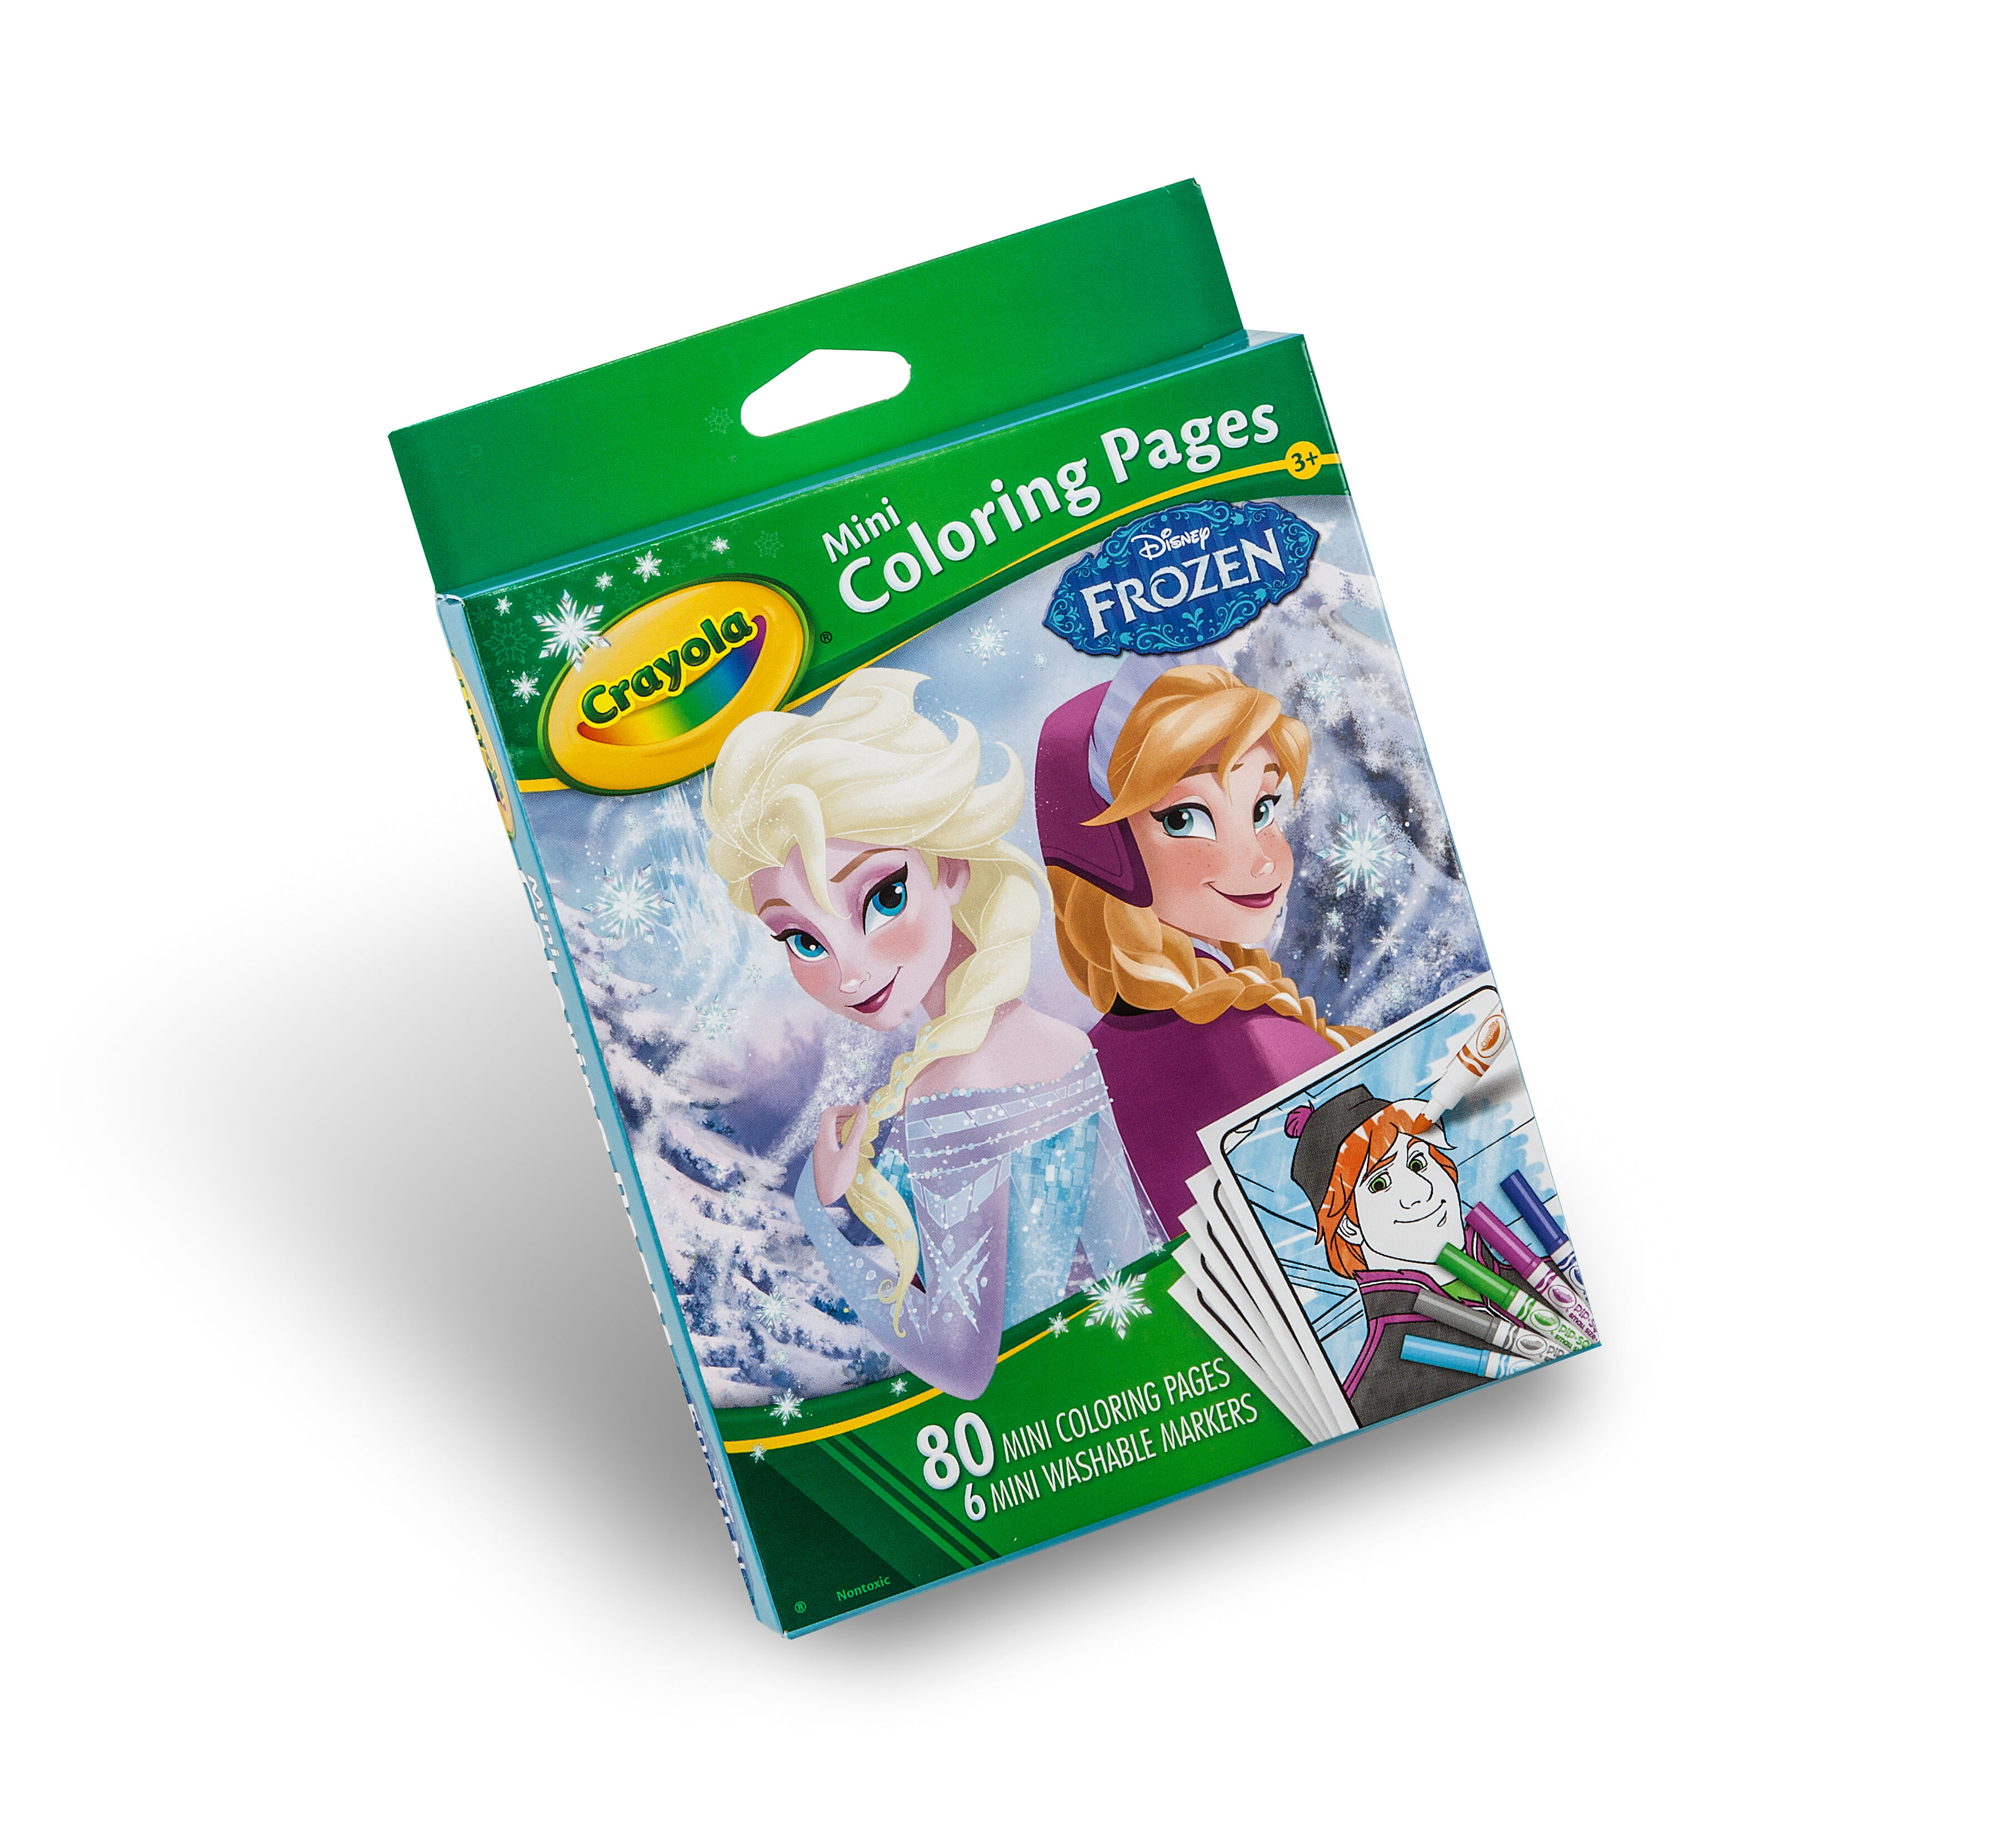 Crayola Mini Coloring Pages Frozen : Disney princess mini coloring pages